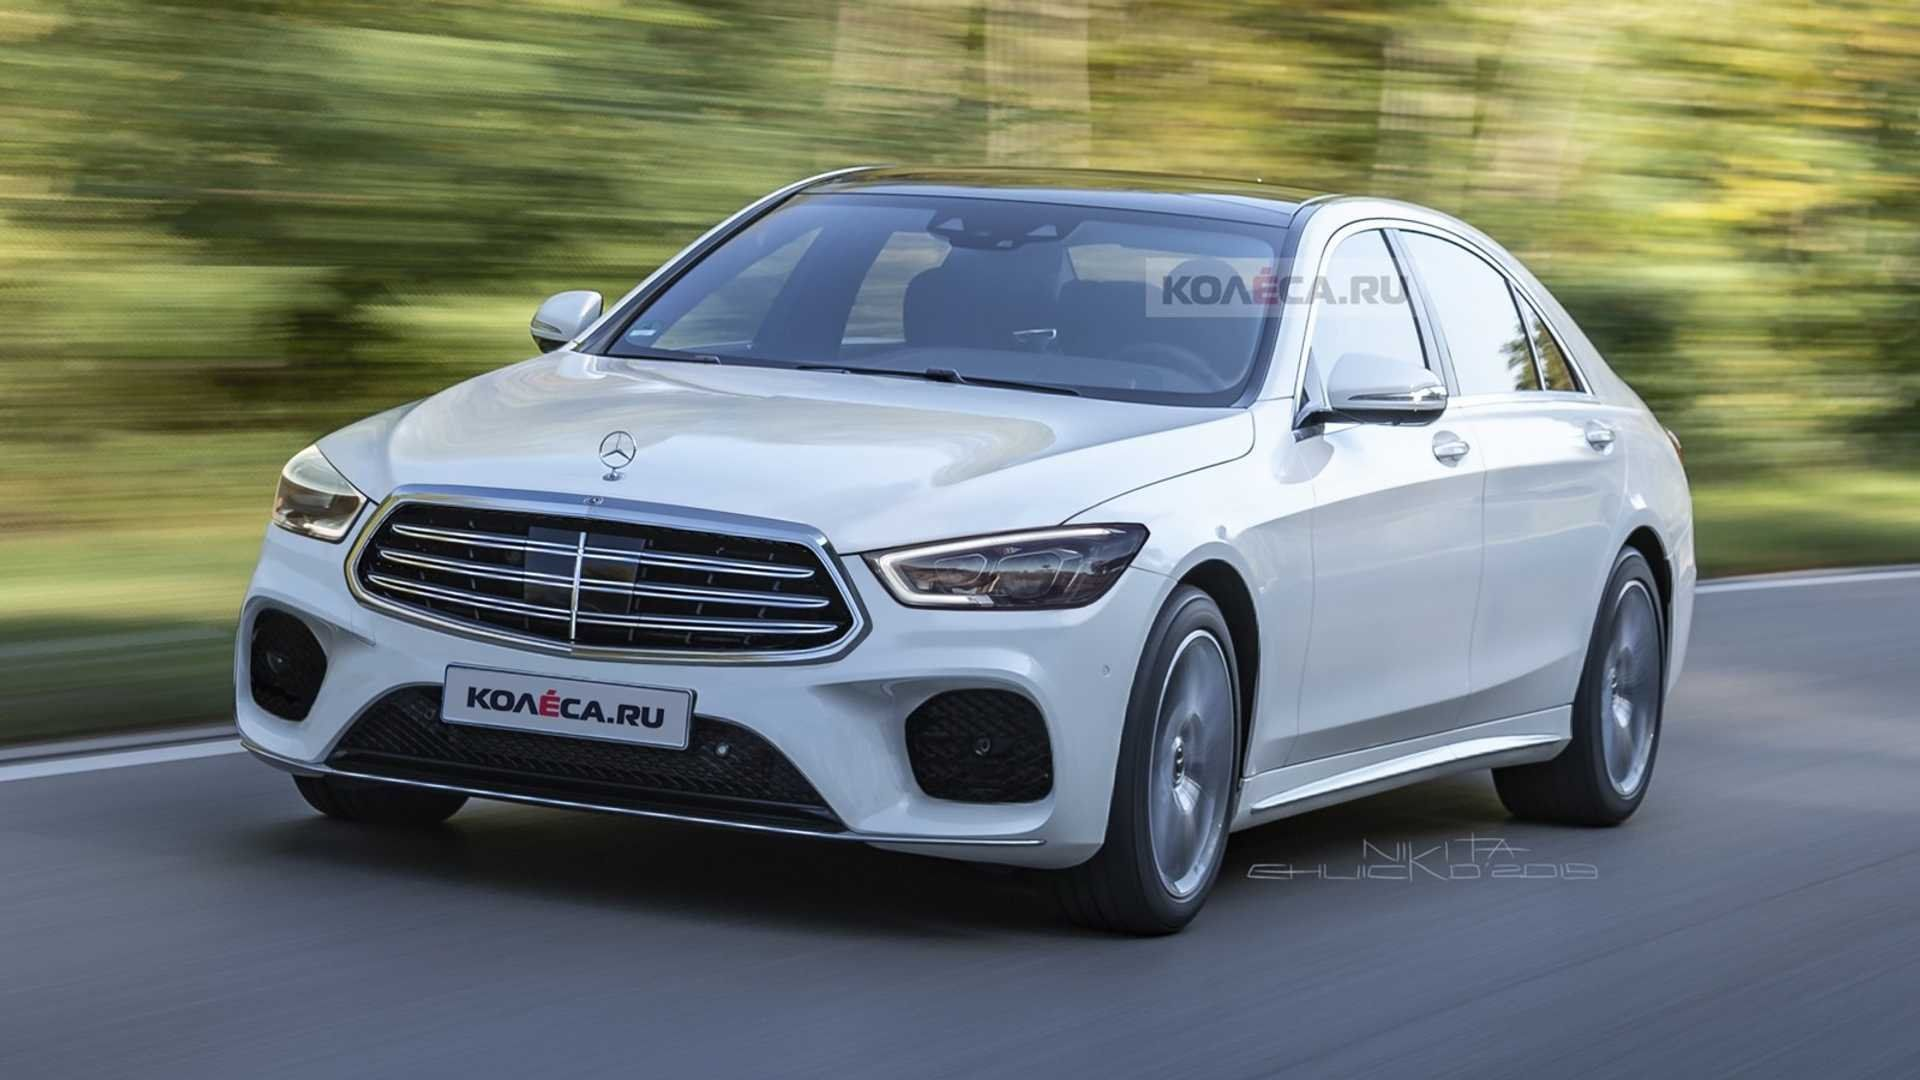 2021 Bmw 5 Series Price In 2020 Mercedes S Class Benz S Class